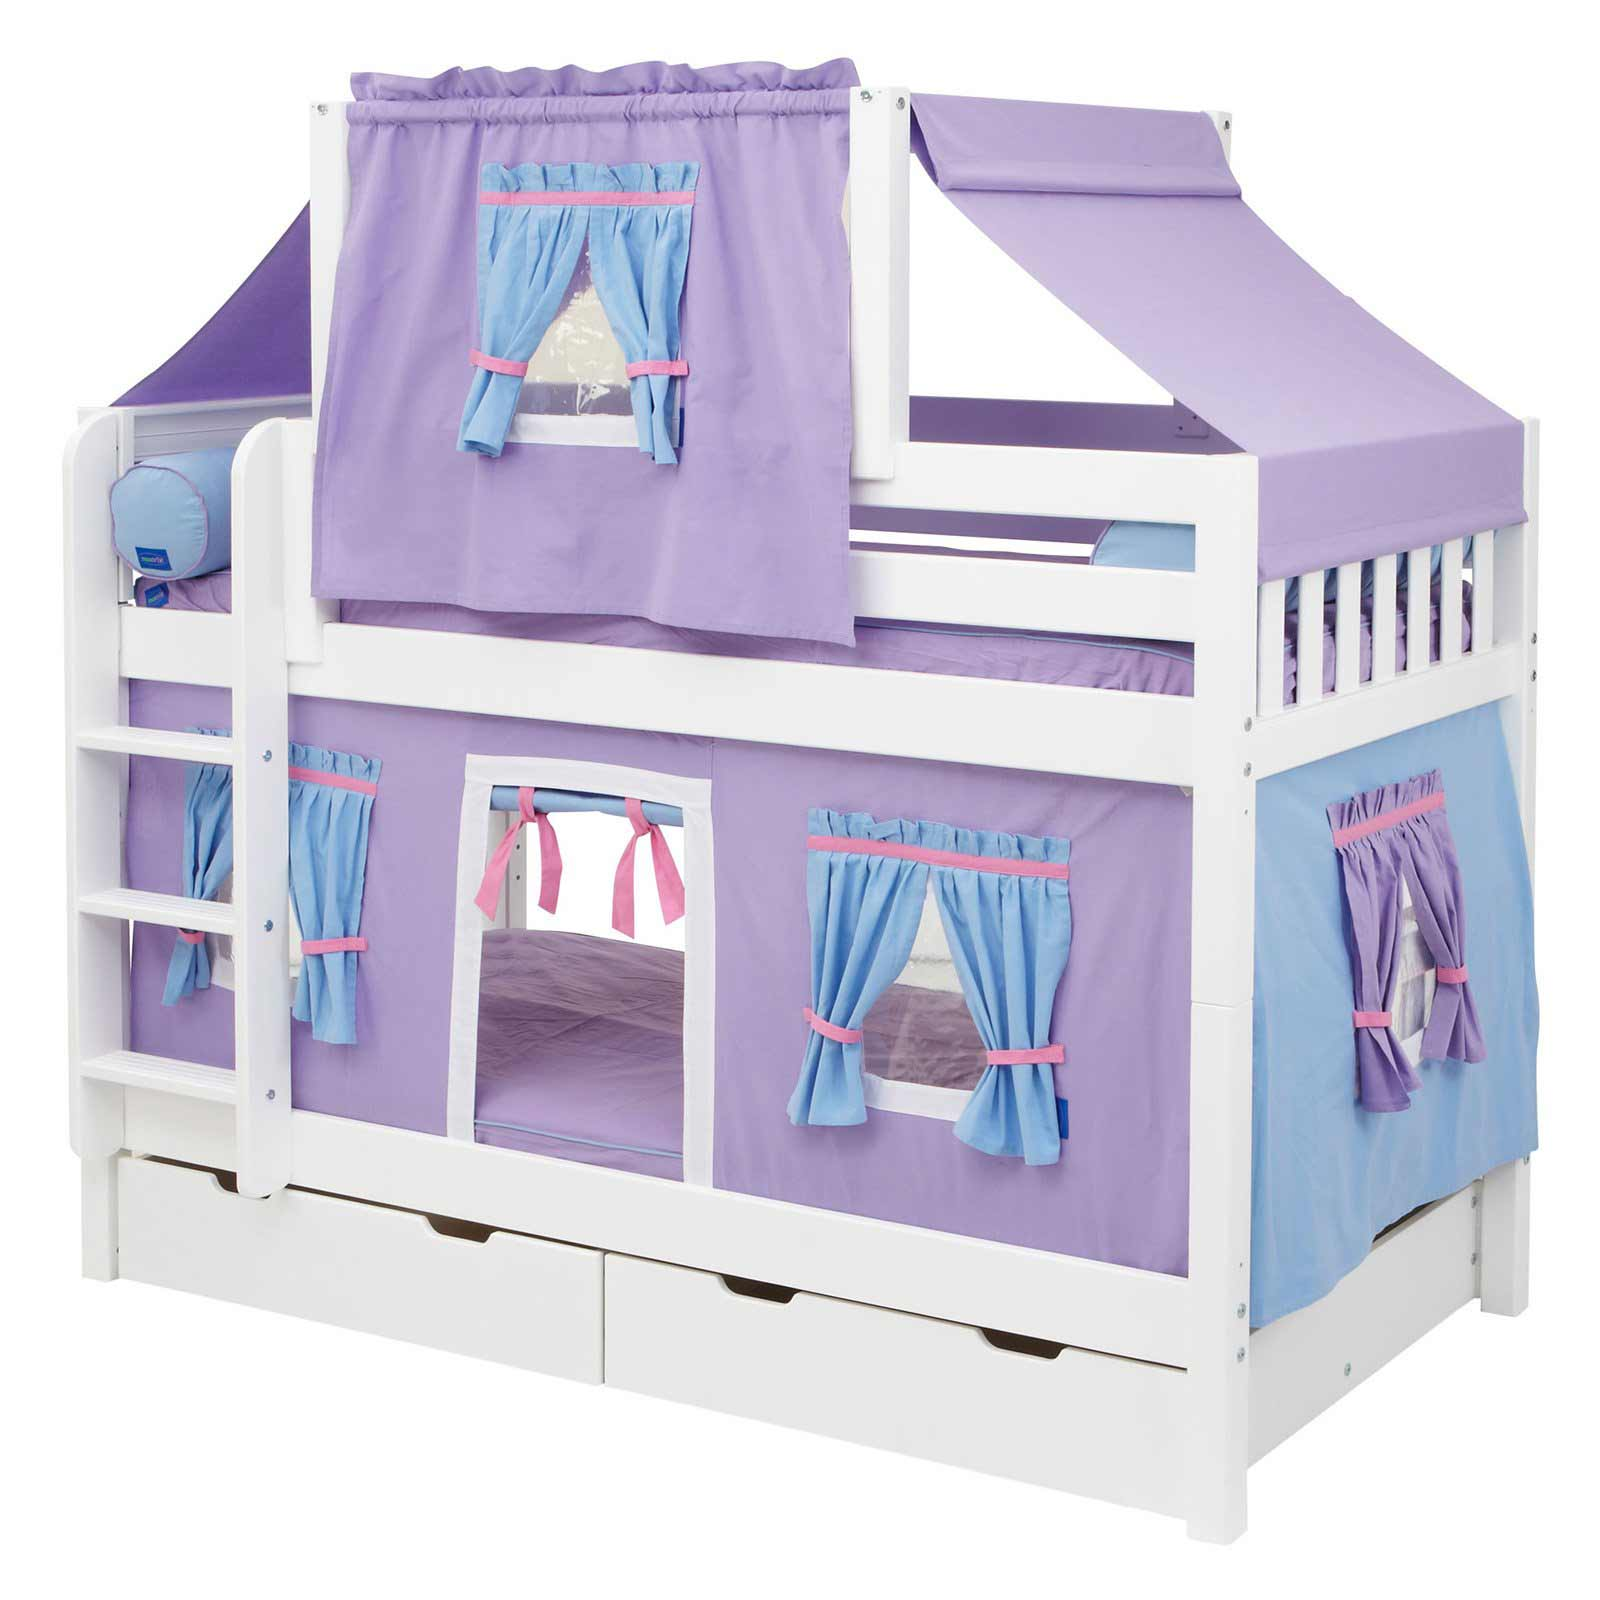 Bunk Bed Canopy 10 Awesome Bunk Beds Decoholic  sc 1 st  Diydesign & Bunk Bed Canopy - 10 Awesome Bunk Beds Decoholic Best Price New ...